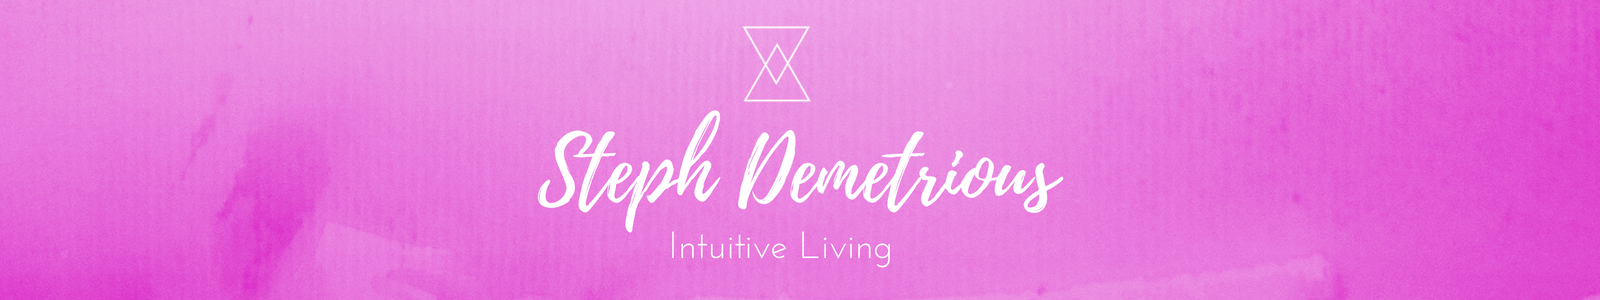 Steph Demetrious - Intuitive Living